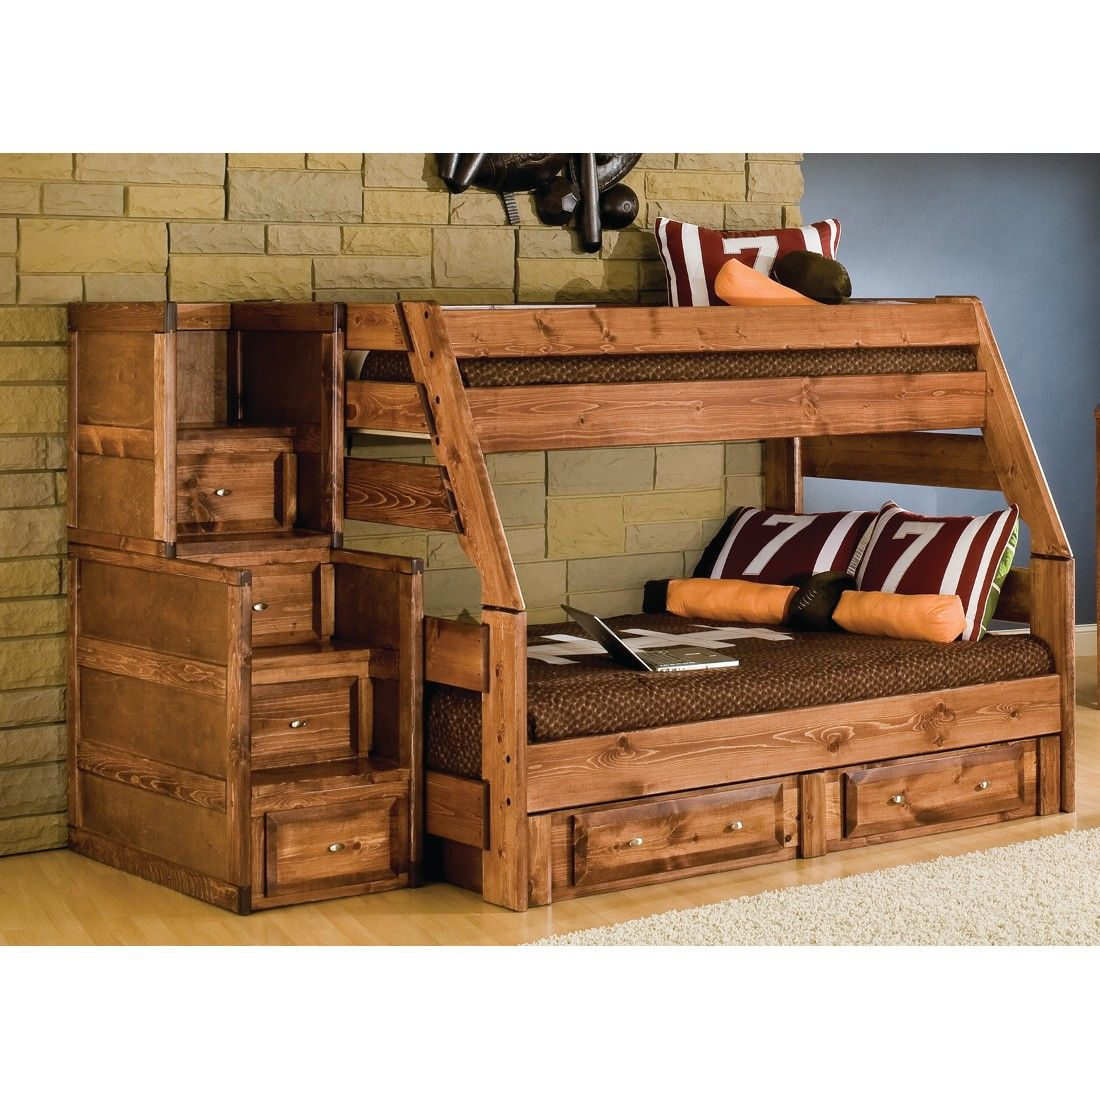 visions furniture. Visions Twin Over Full Bunk Bed - Cocoa : Kids\u0027 Bedroom Furniture